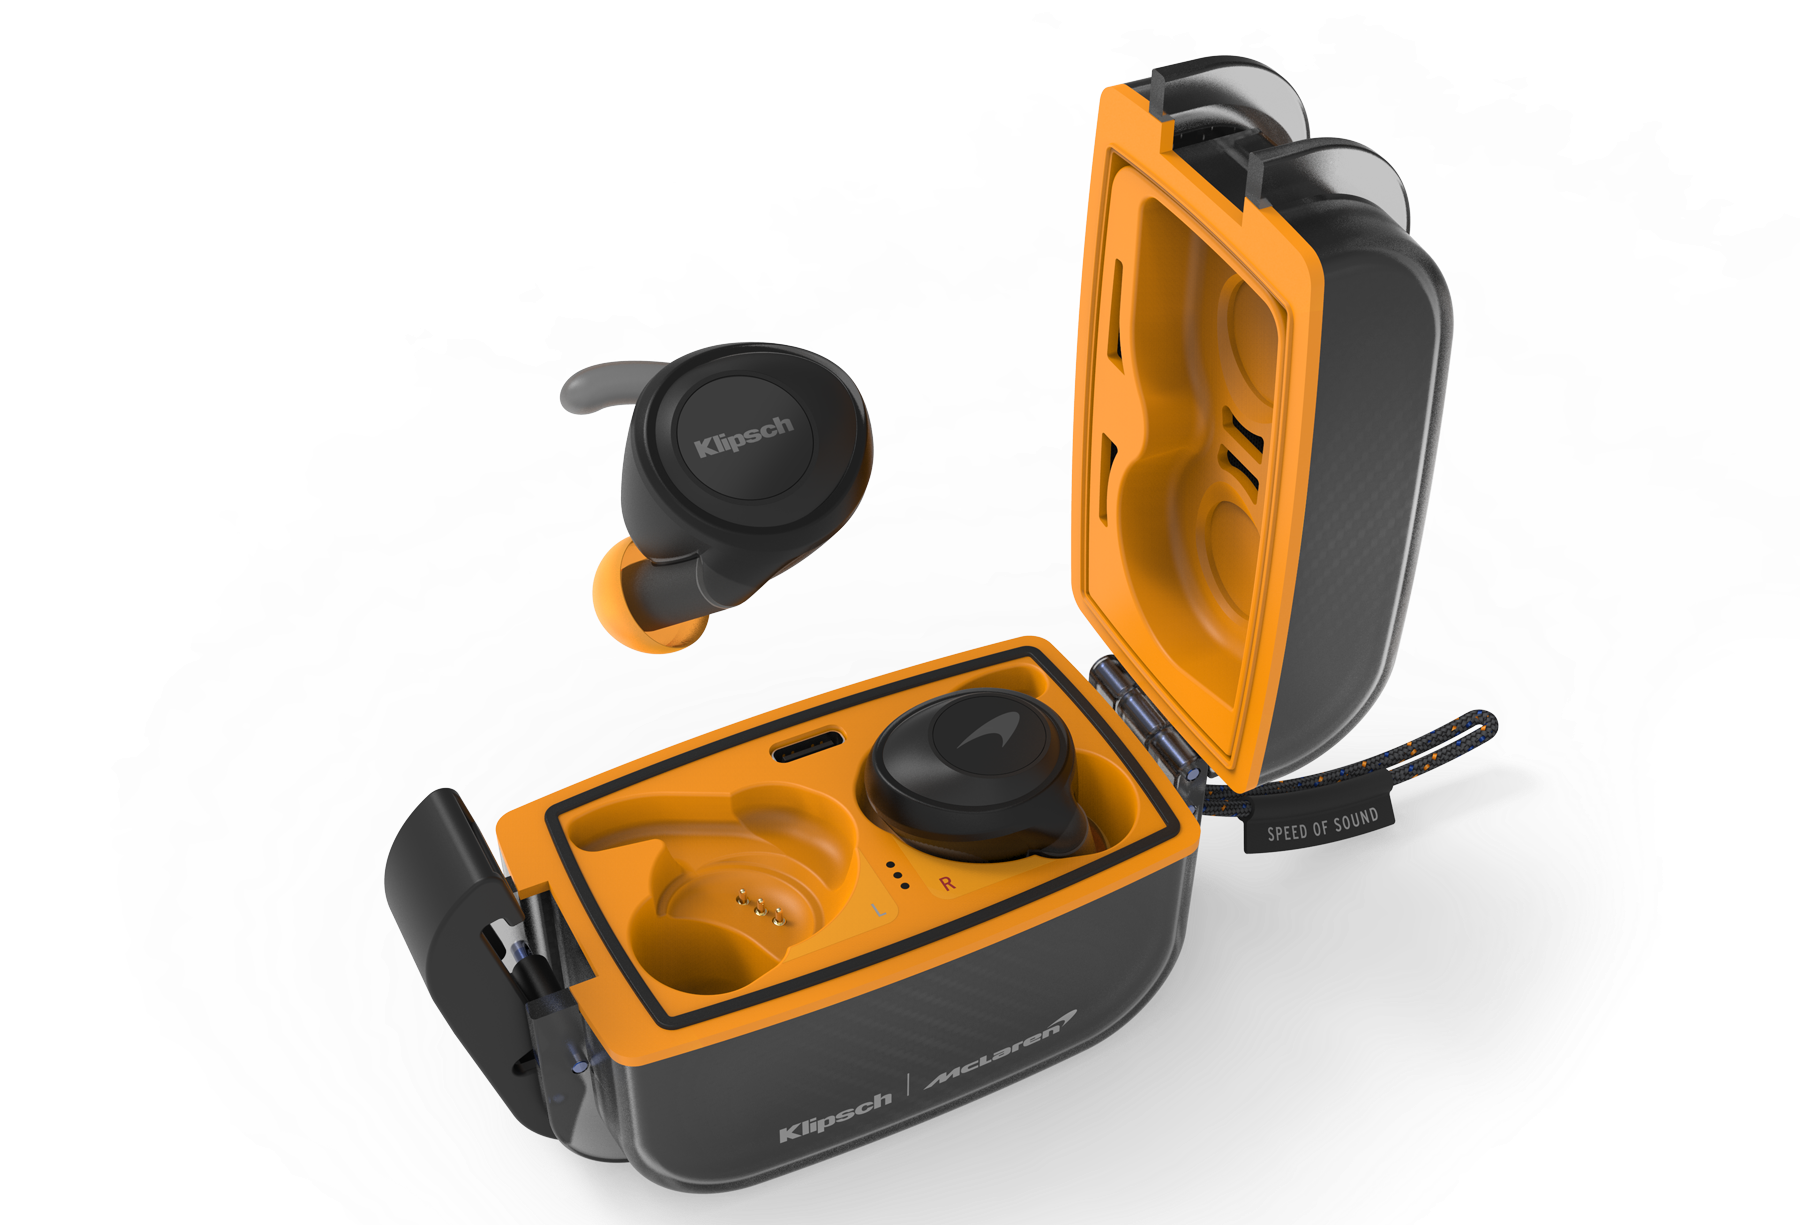 Klipsch's next true wireless earbuds will include AI and gesture controls